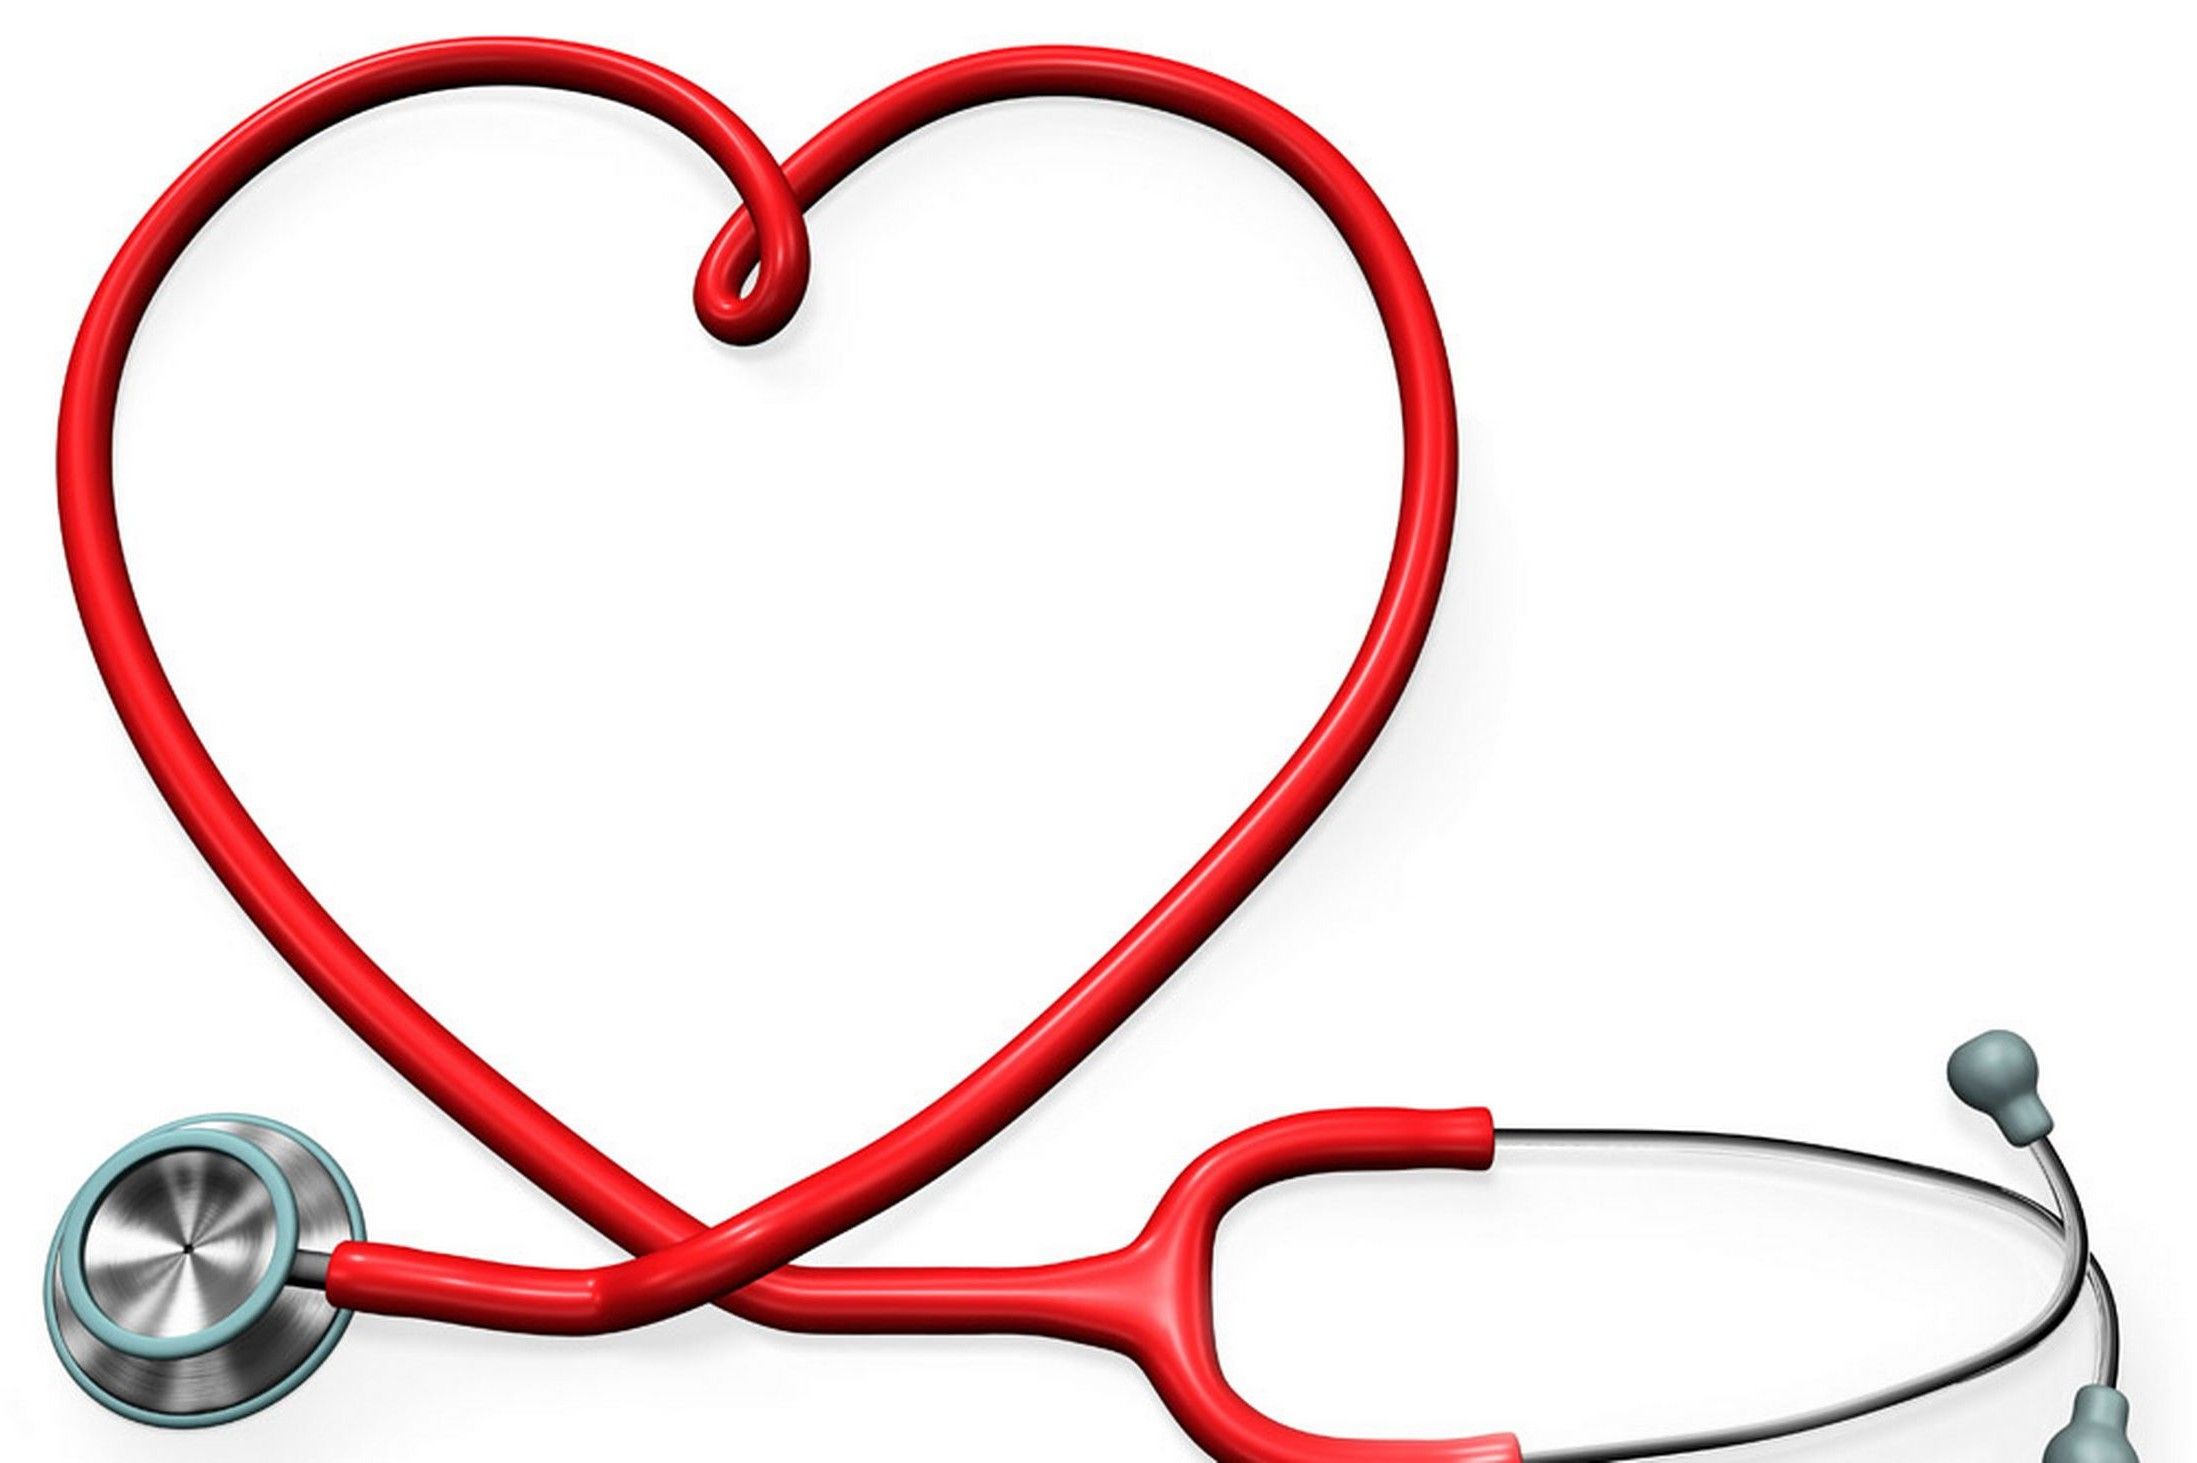 Stethoscope Forming A Heart Shape 1703689 Green Essentials